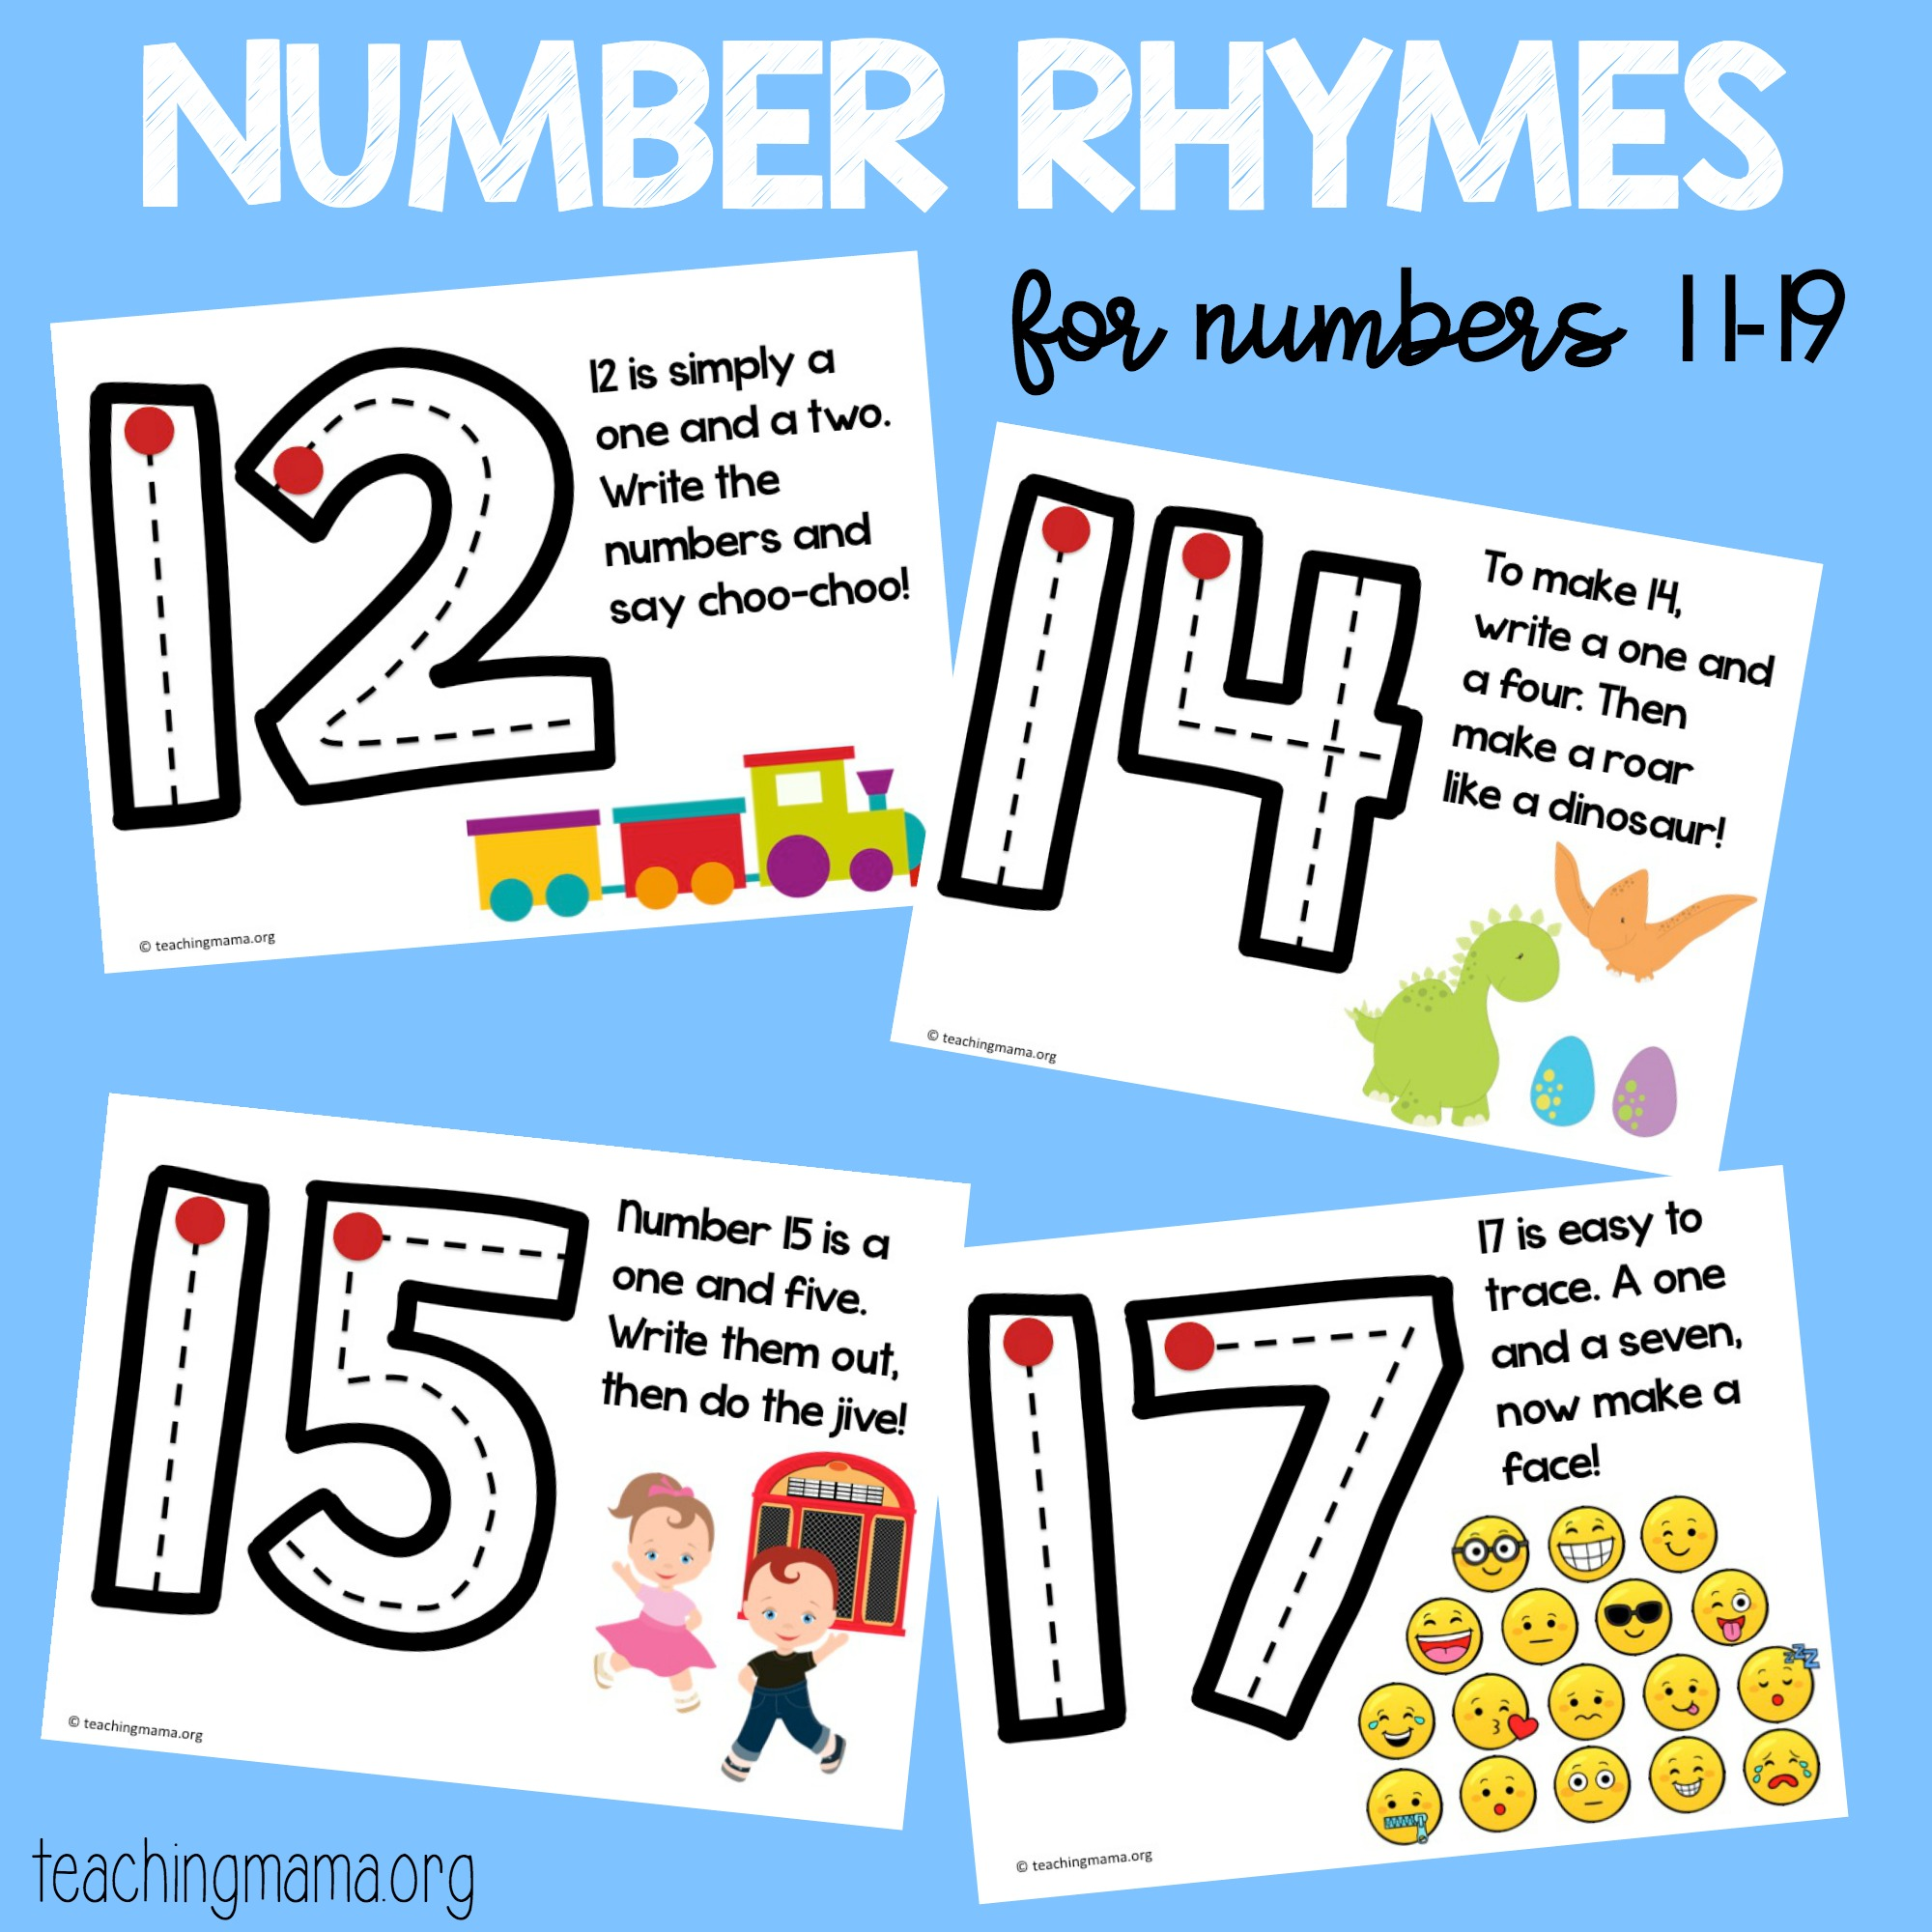 11-19 number rhymes